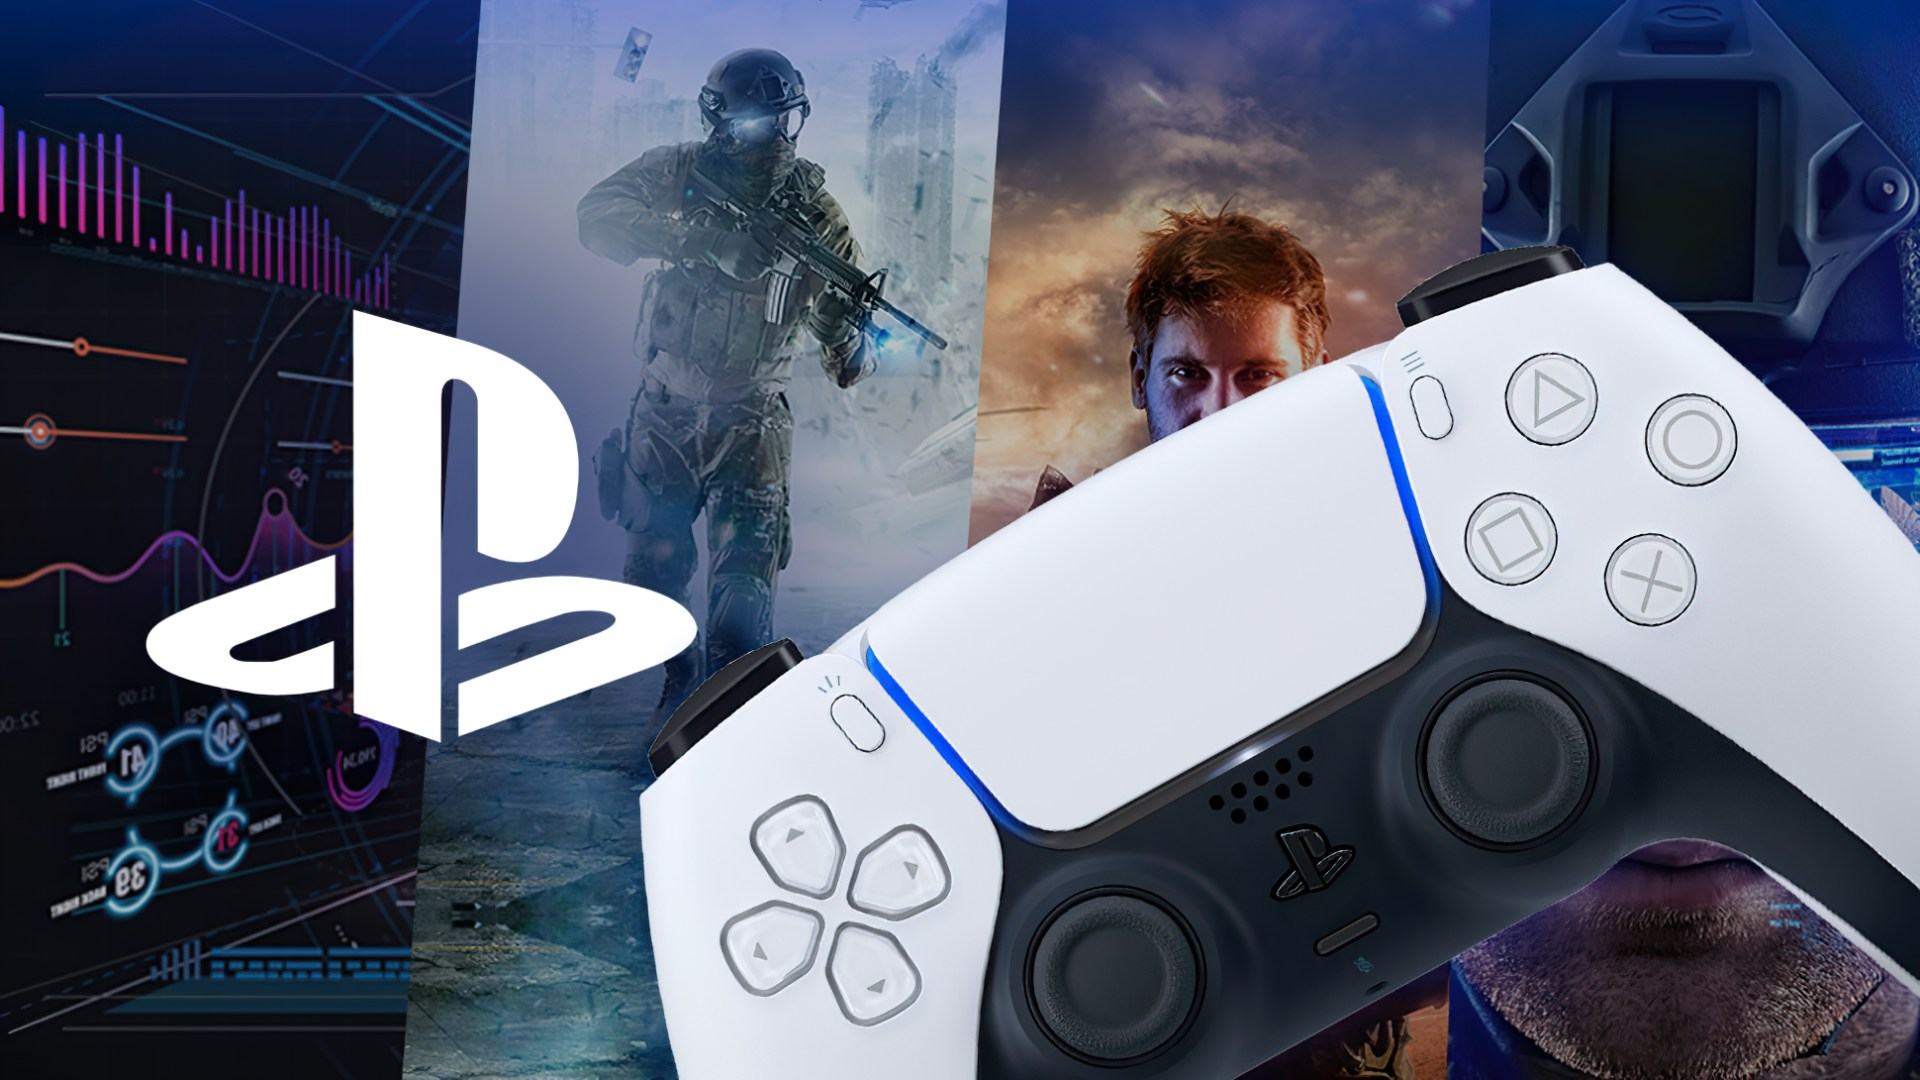 Trailer, Gaming, Spiele, Konsole, Sony, Leak, Games, Werbespot, Spielekonsole, Controller, PlayStation 5, ps5, Dualsense, TV-Spot